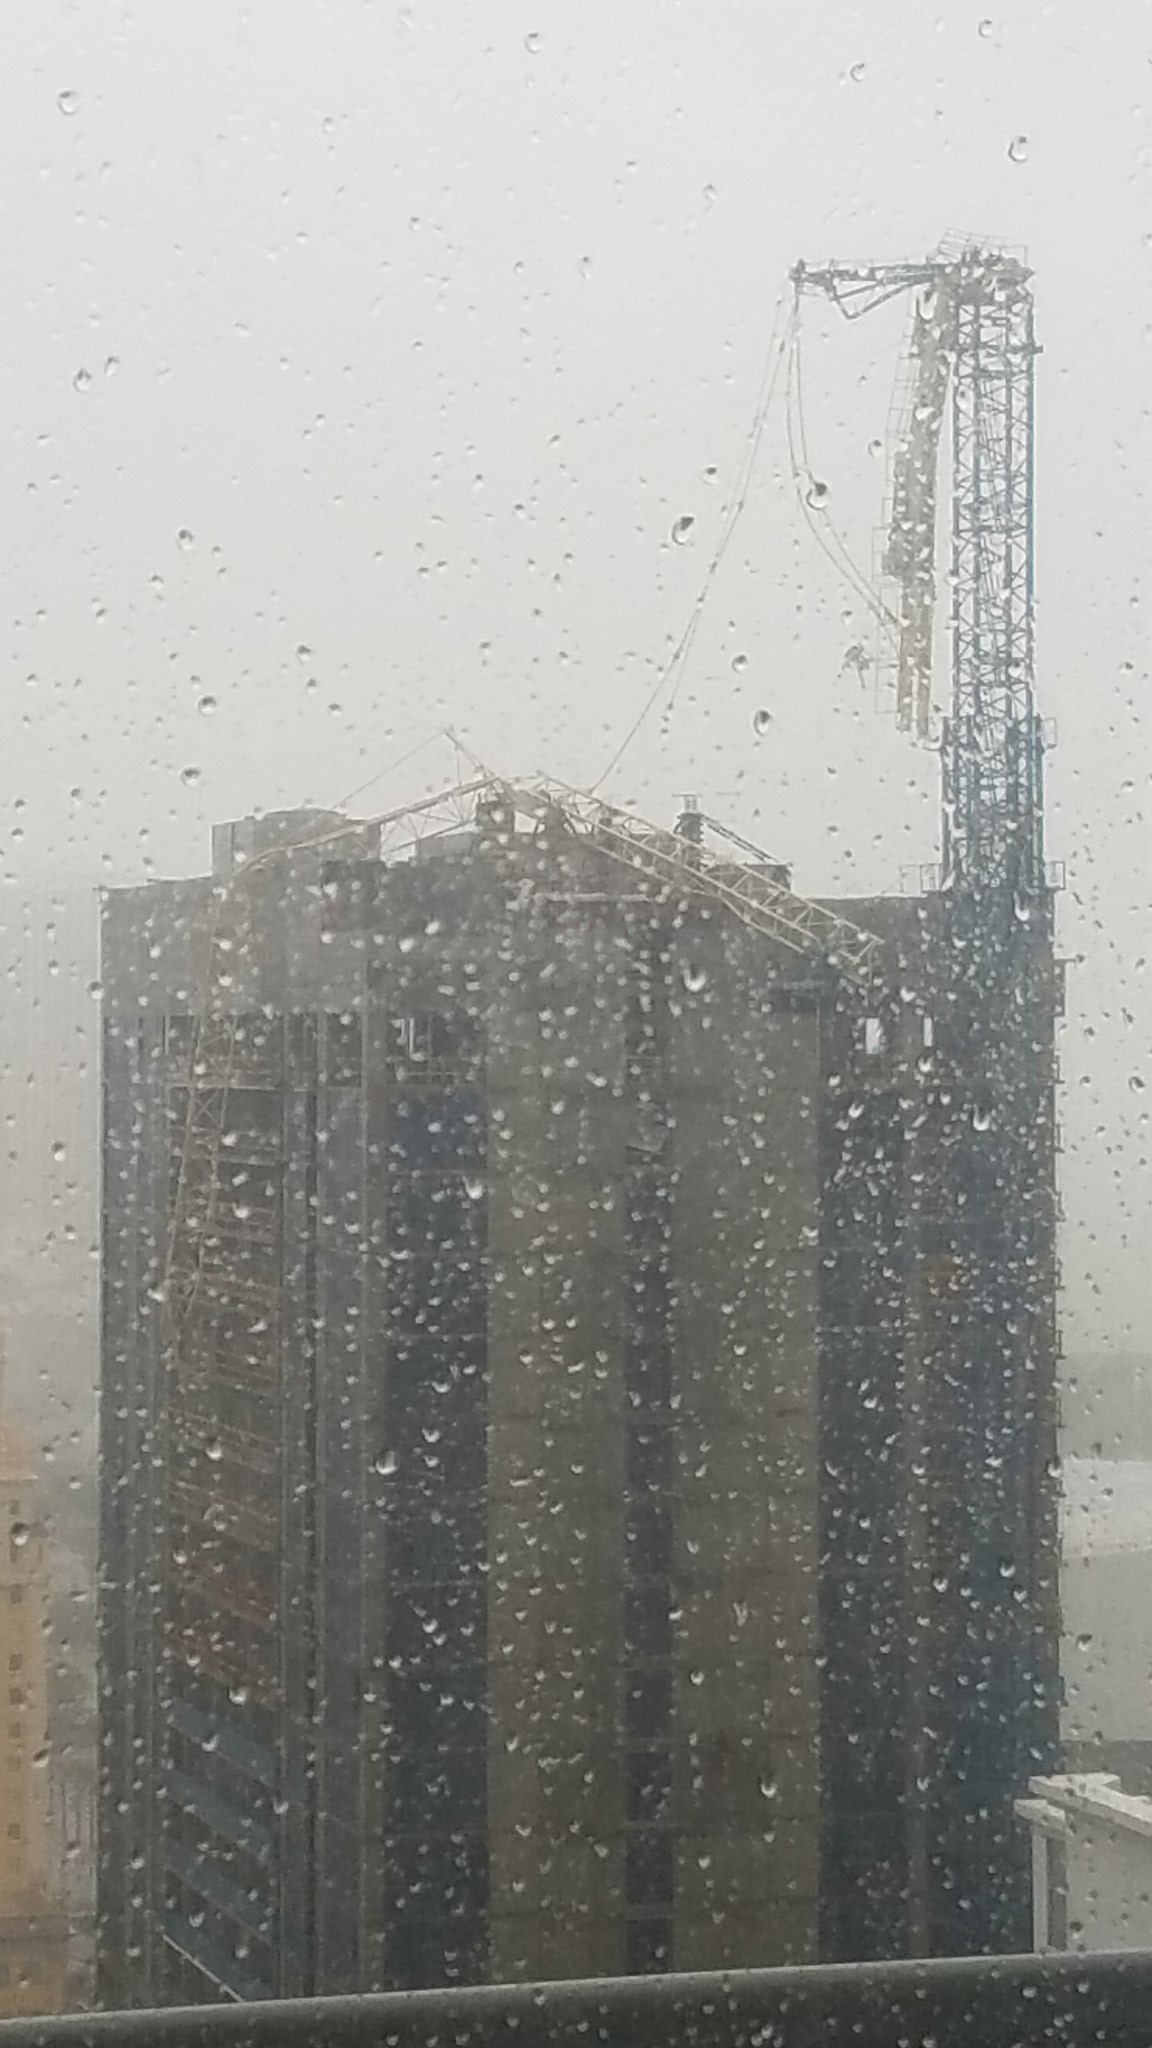 <div class='meta'><div class='origin-logo' data-origin='none'></div><span class='caption-text' data-credit='nesumosa/Twitter'>A large crane snapped from the force of the storm in Miami.</span></div>